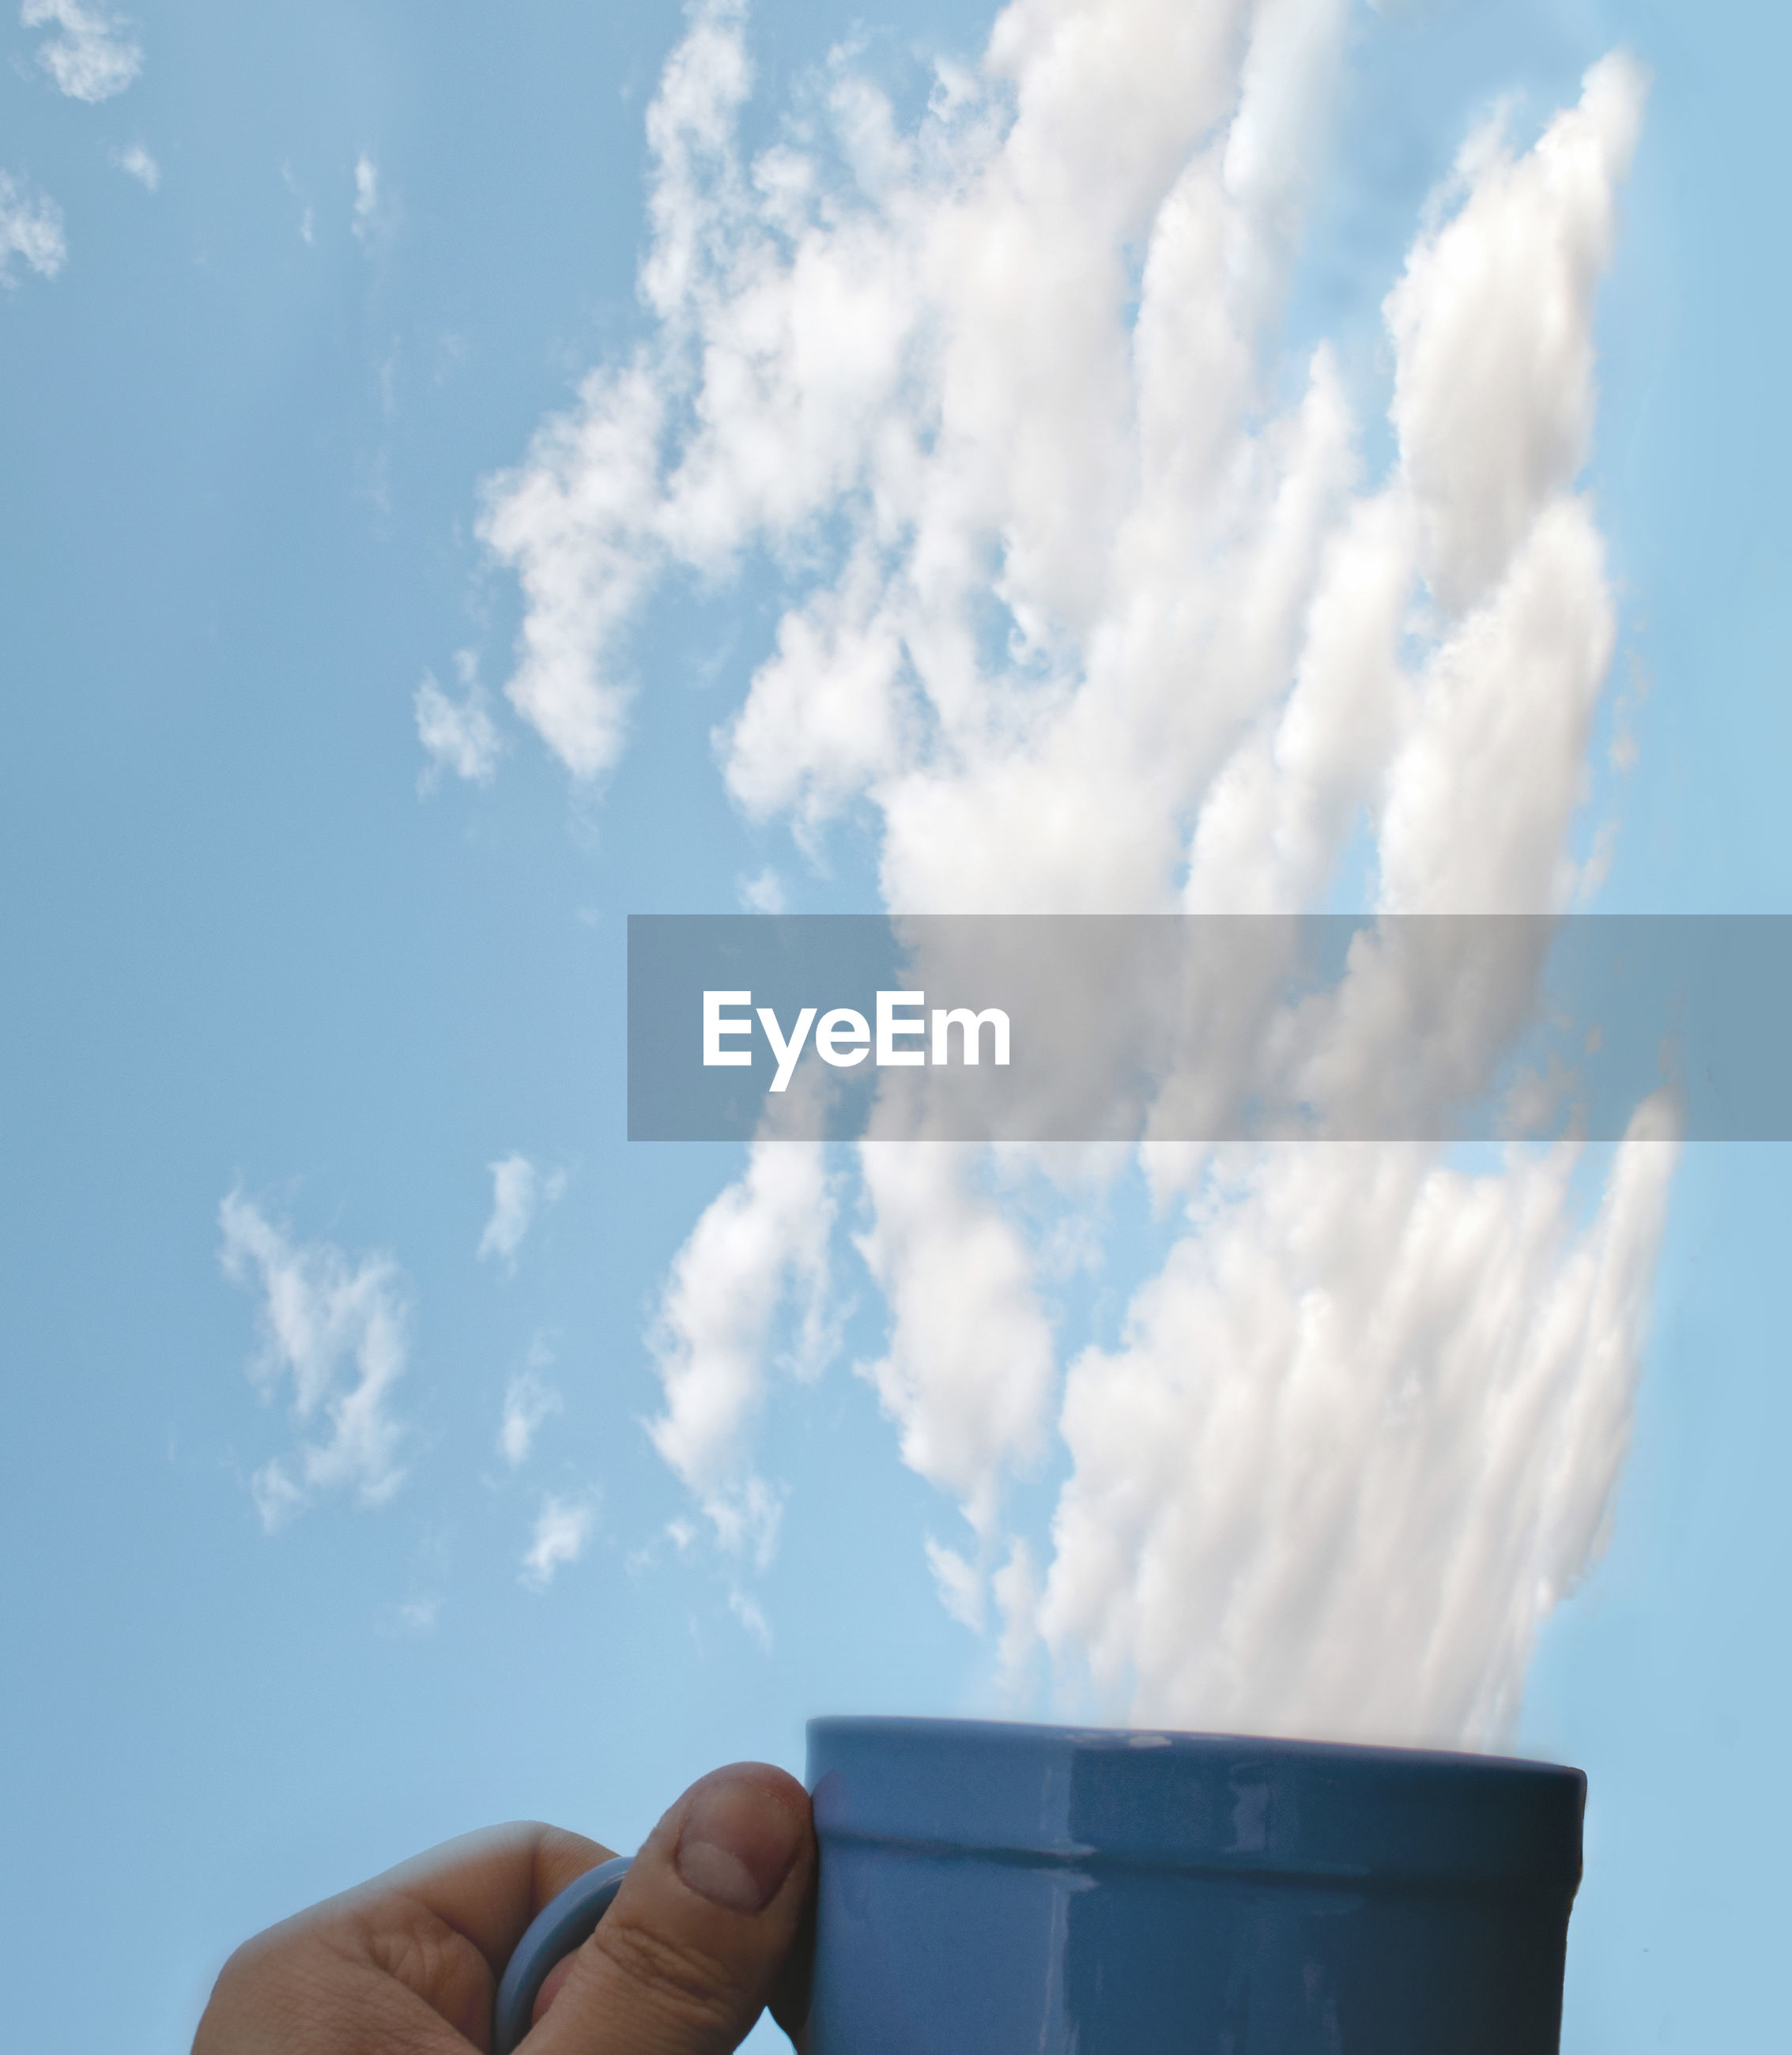 Close-up of person holding cup against sky